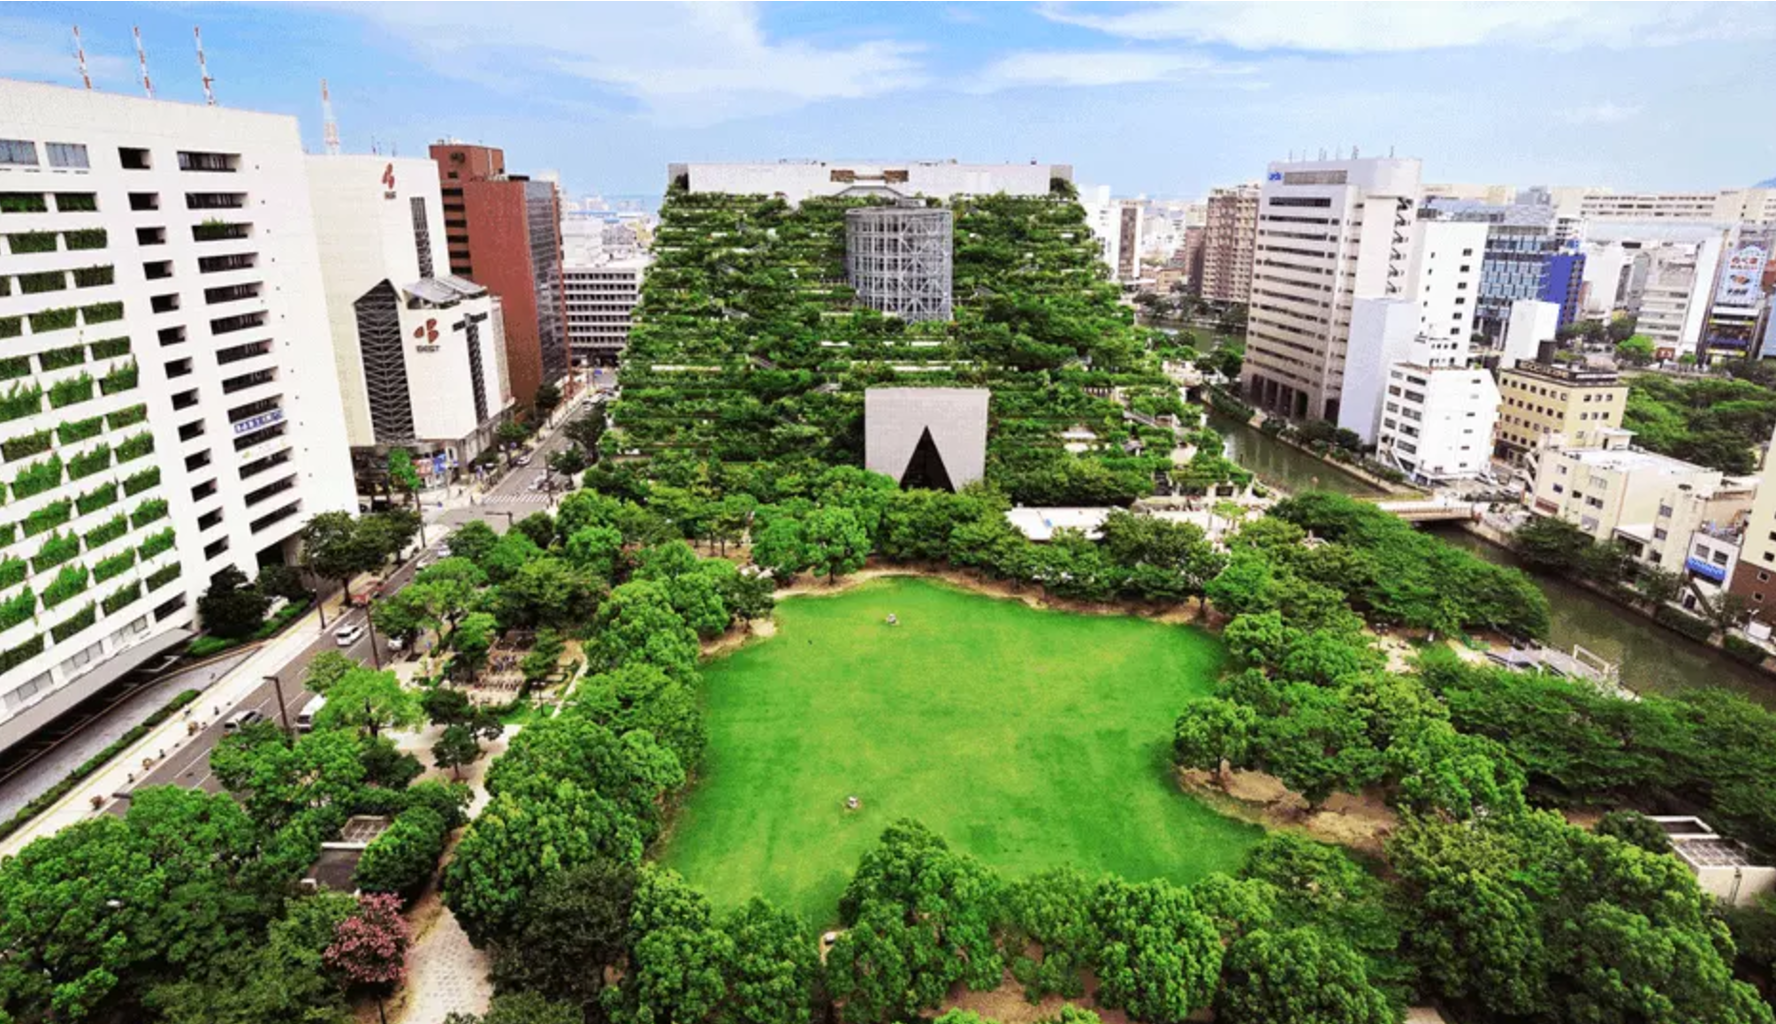 The Acros building in Fukuoka city, Japan, which has 15 stepped terraces and green spaces. Picture: City of Fukuoka